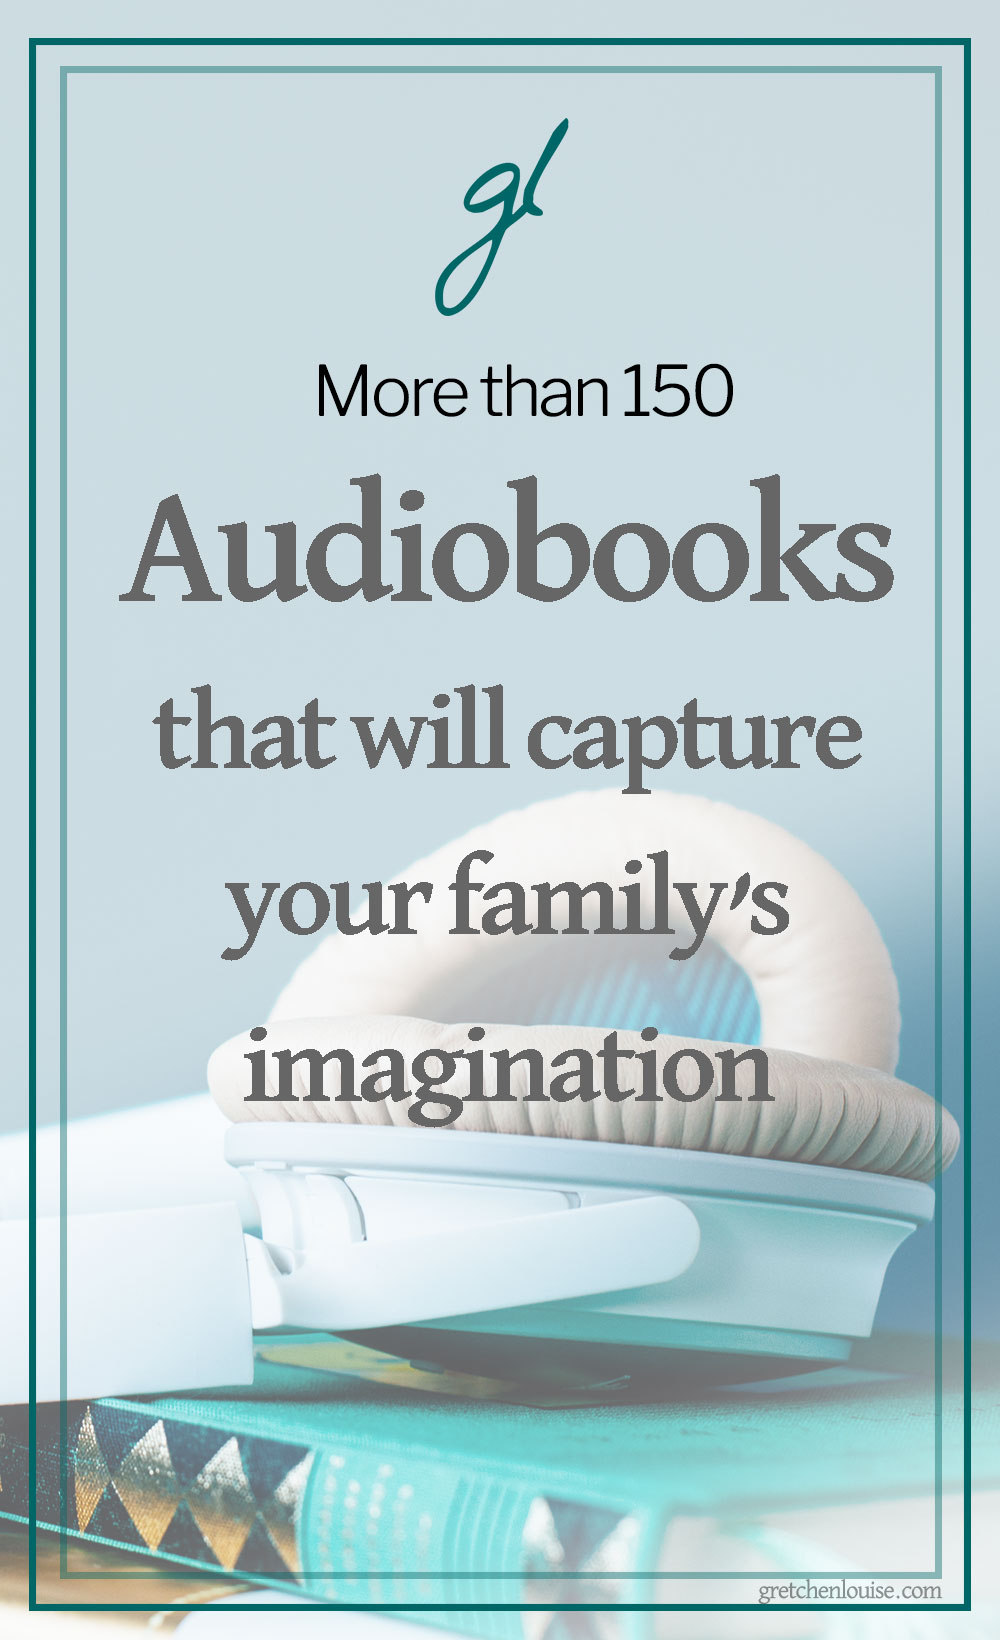 Audiobooks are so much more than just wholesome entertainment. Audiobooks can inspire the imagination, train vocabulary, instill values, teach character traits, and introduce classic literature. Audiobooks give Mom and Dad's voices a break from reading aloud (and literally save the day when everyone has a cold bug and no voice). And audiobooks can be enjoyed together by the whole family whether folding laundry or going on a road trip. via @GretLouise